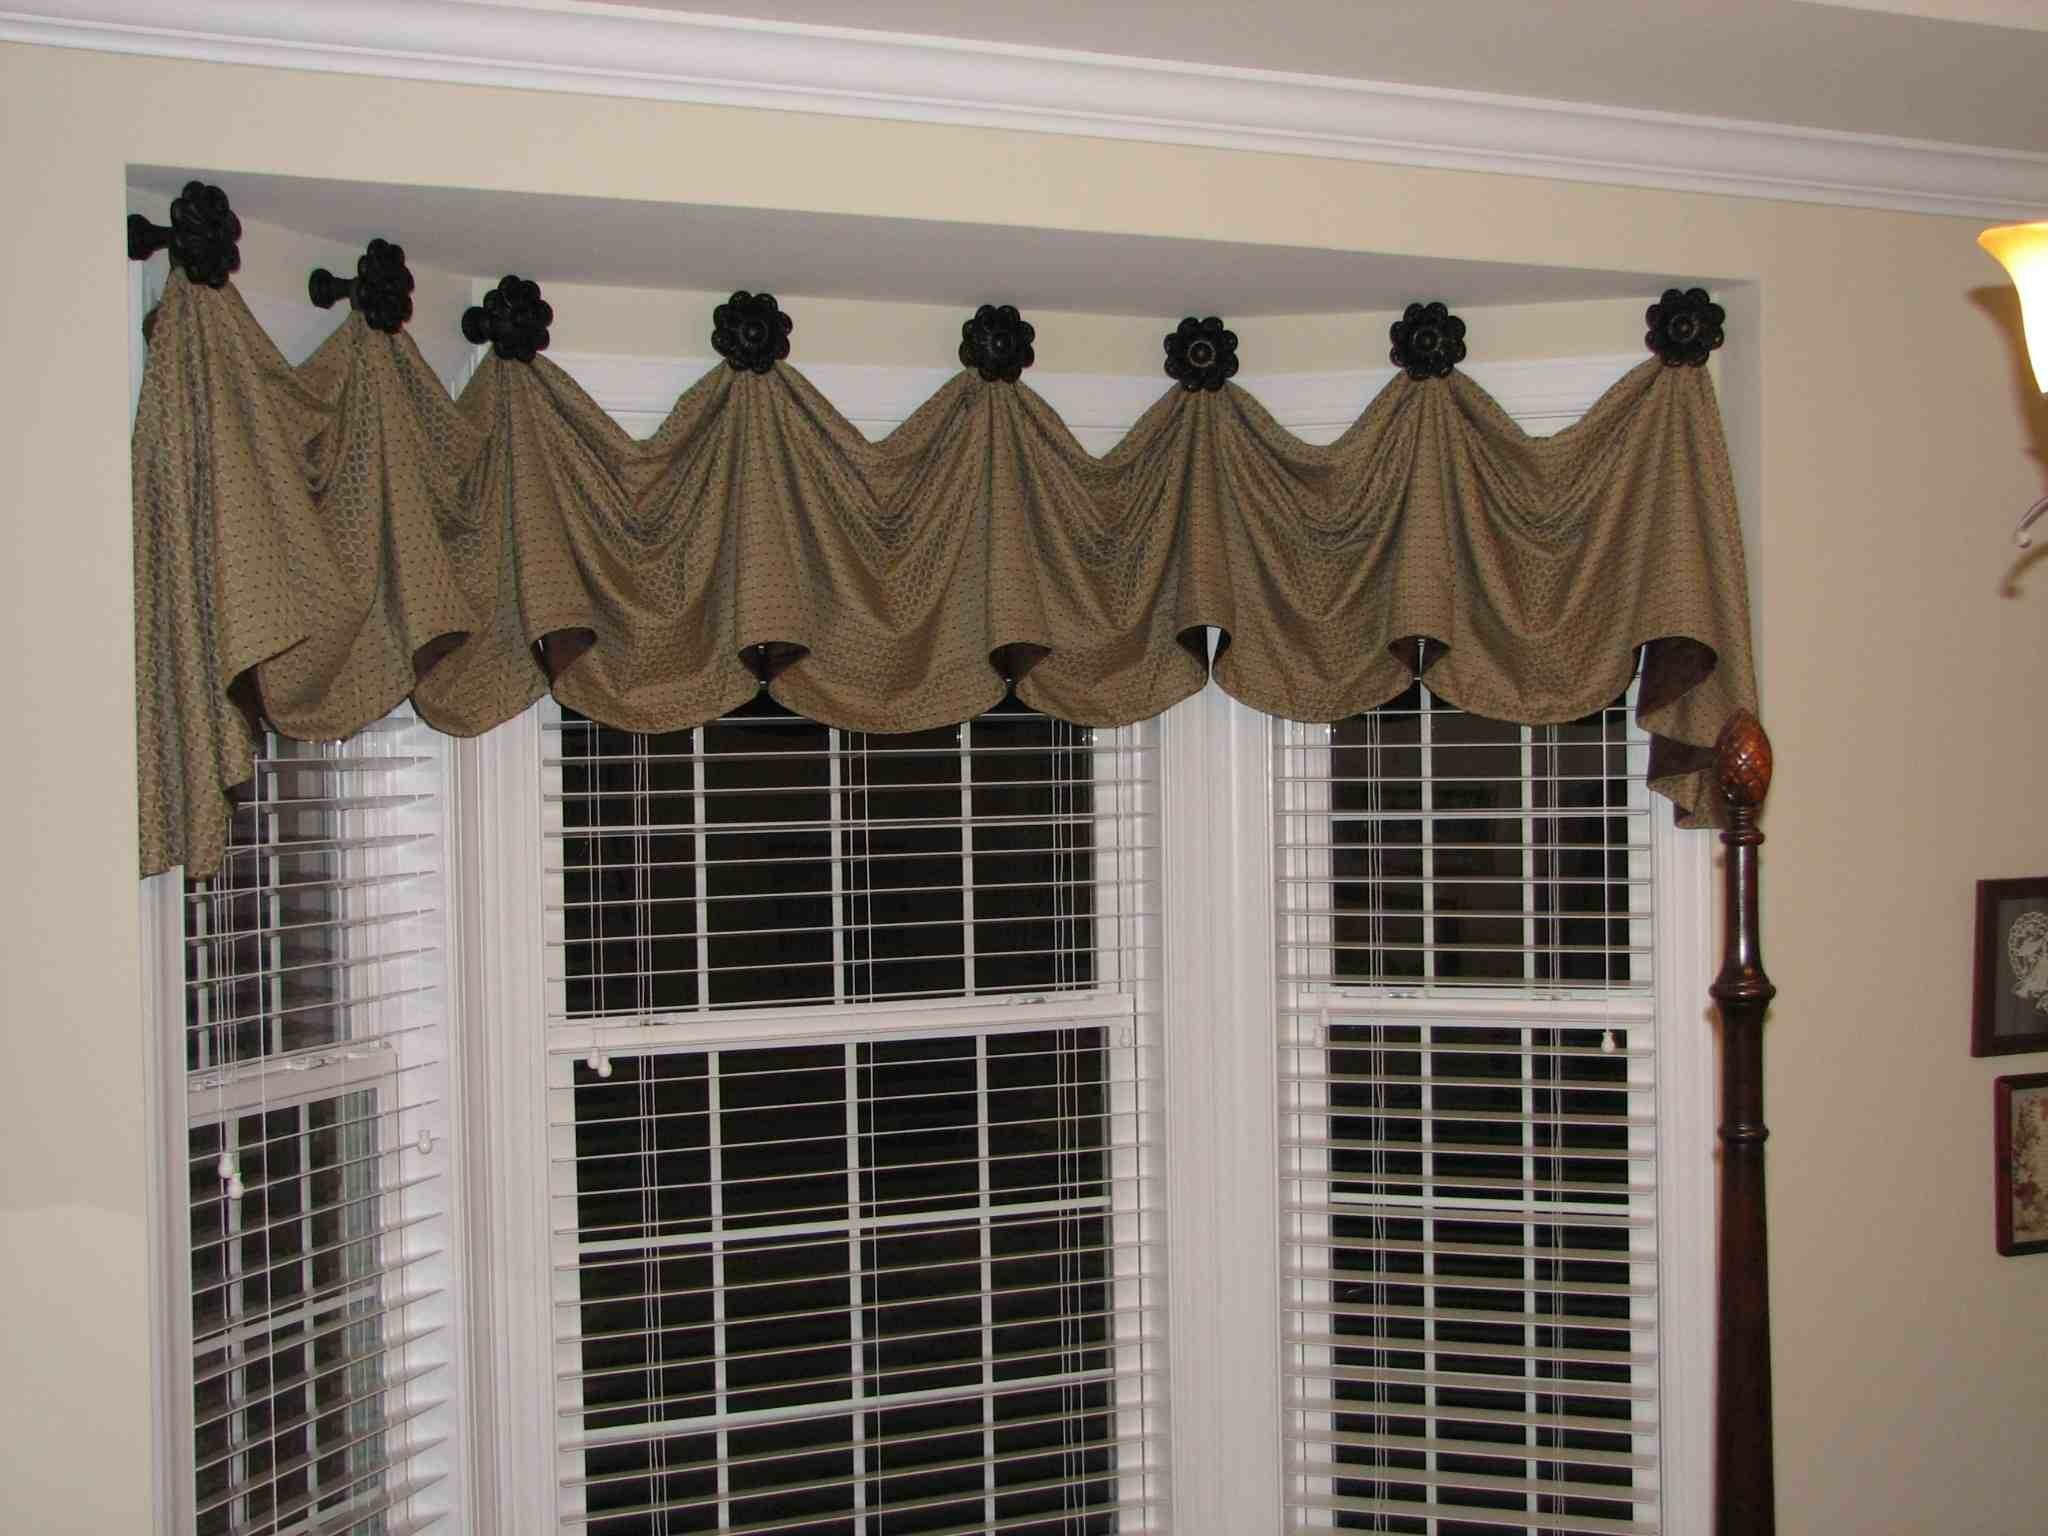 Living Room Valances | Window Valance Treatments | Valances Living Room